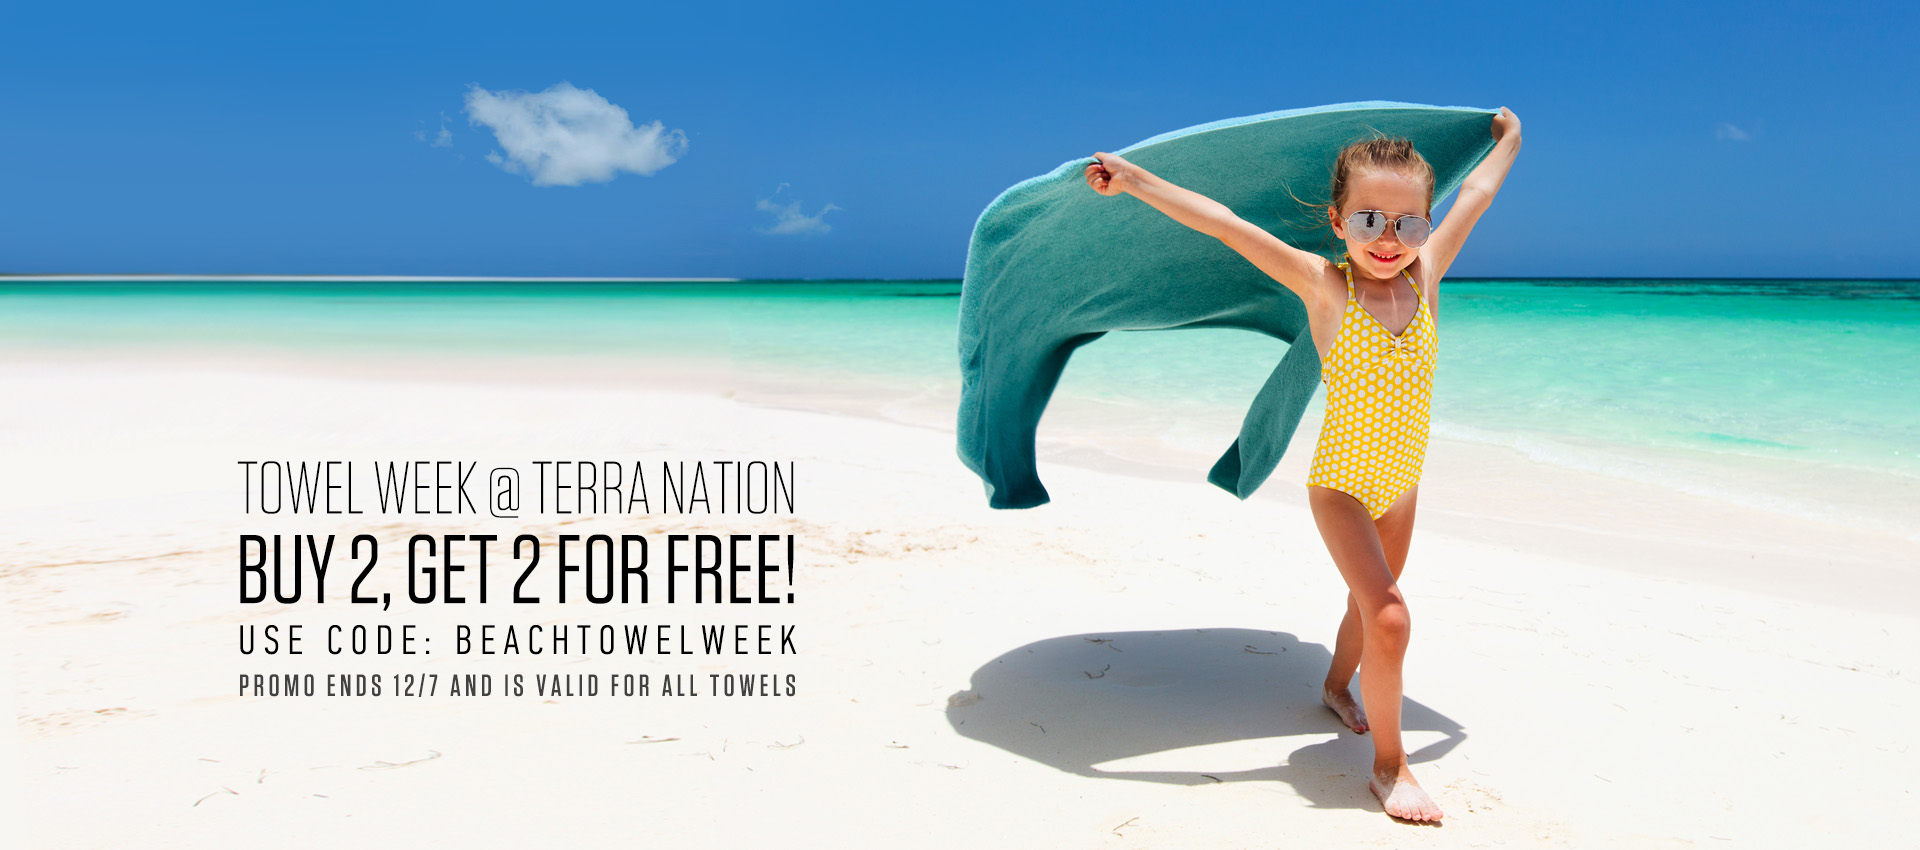 Terra Nation celebrates July with a 2+2 on all towels week